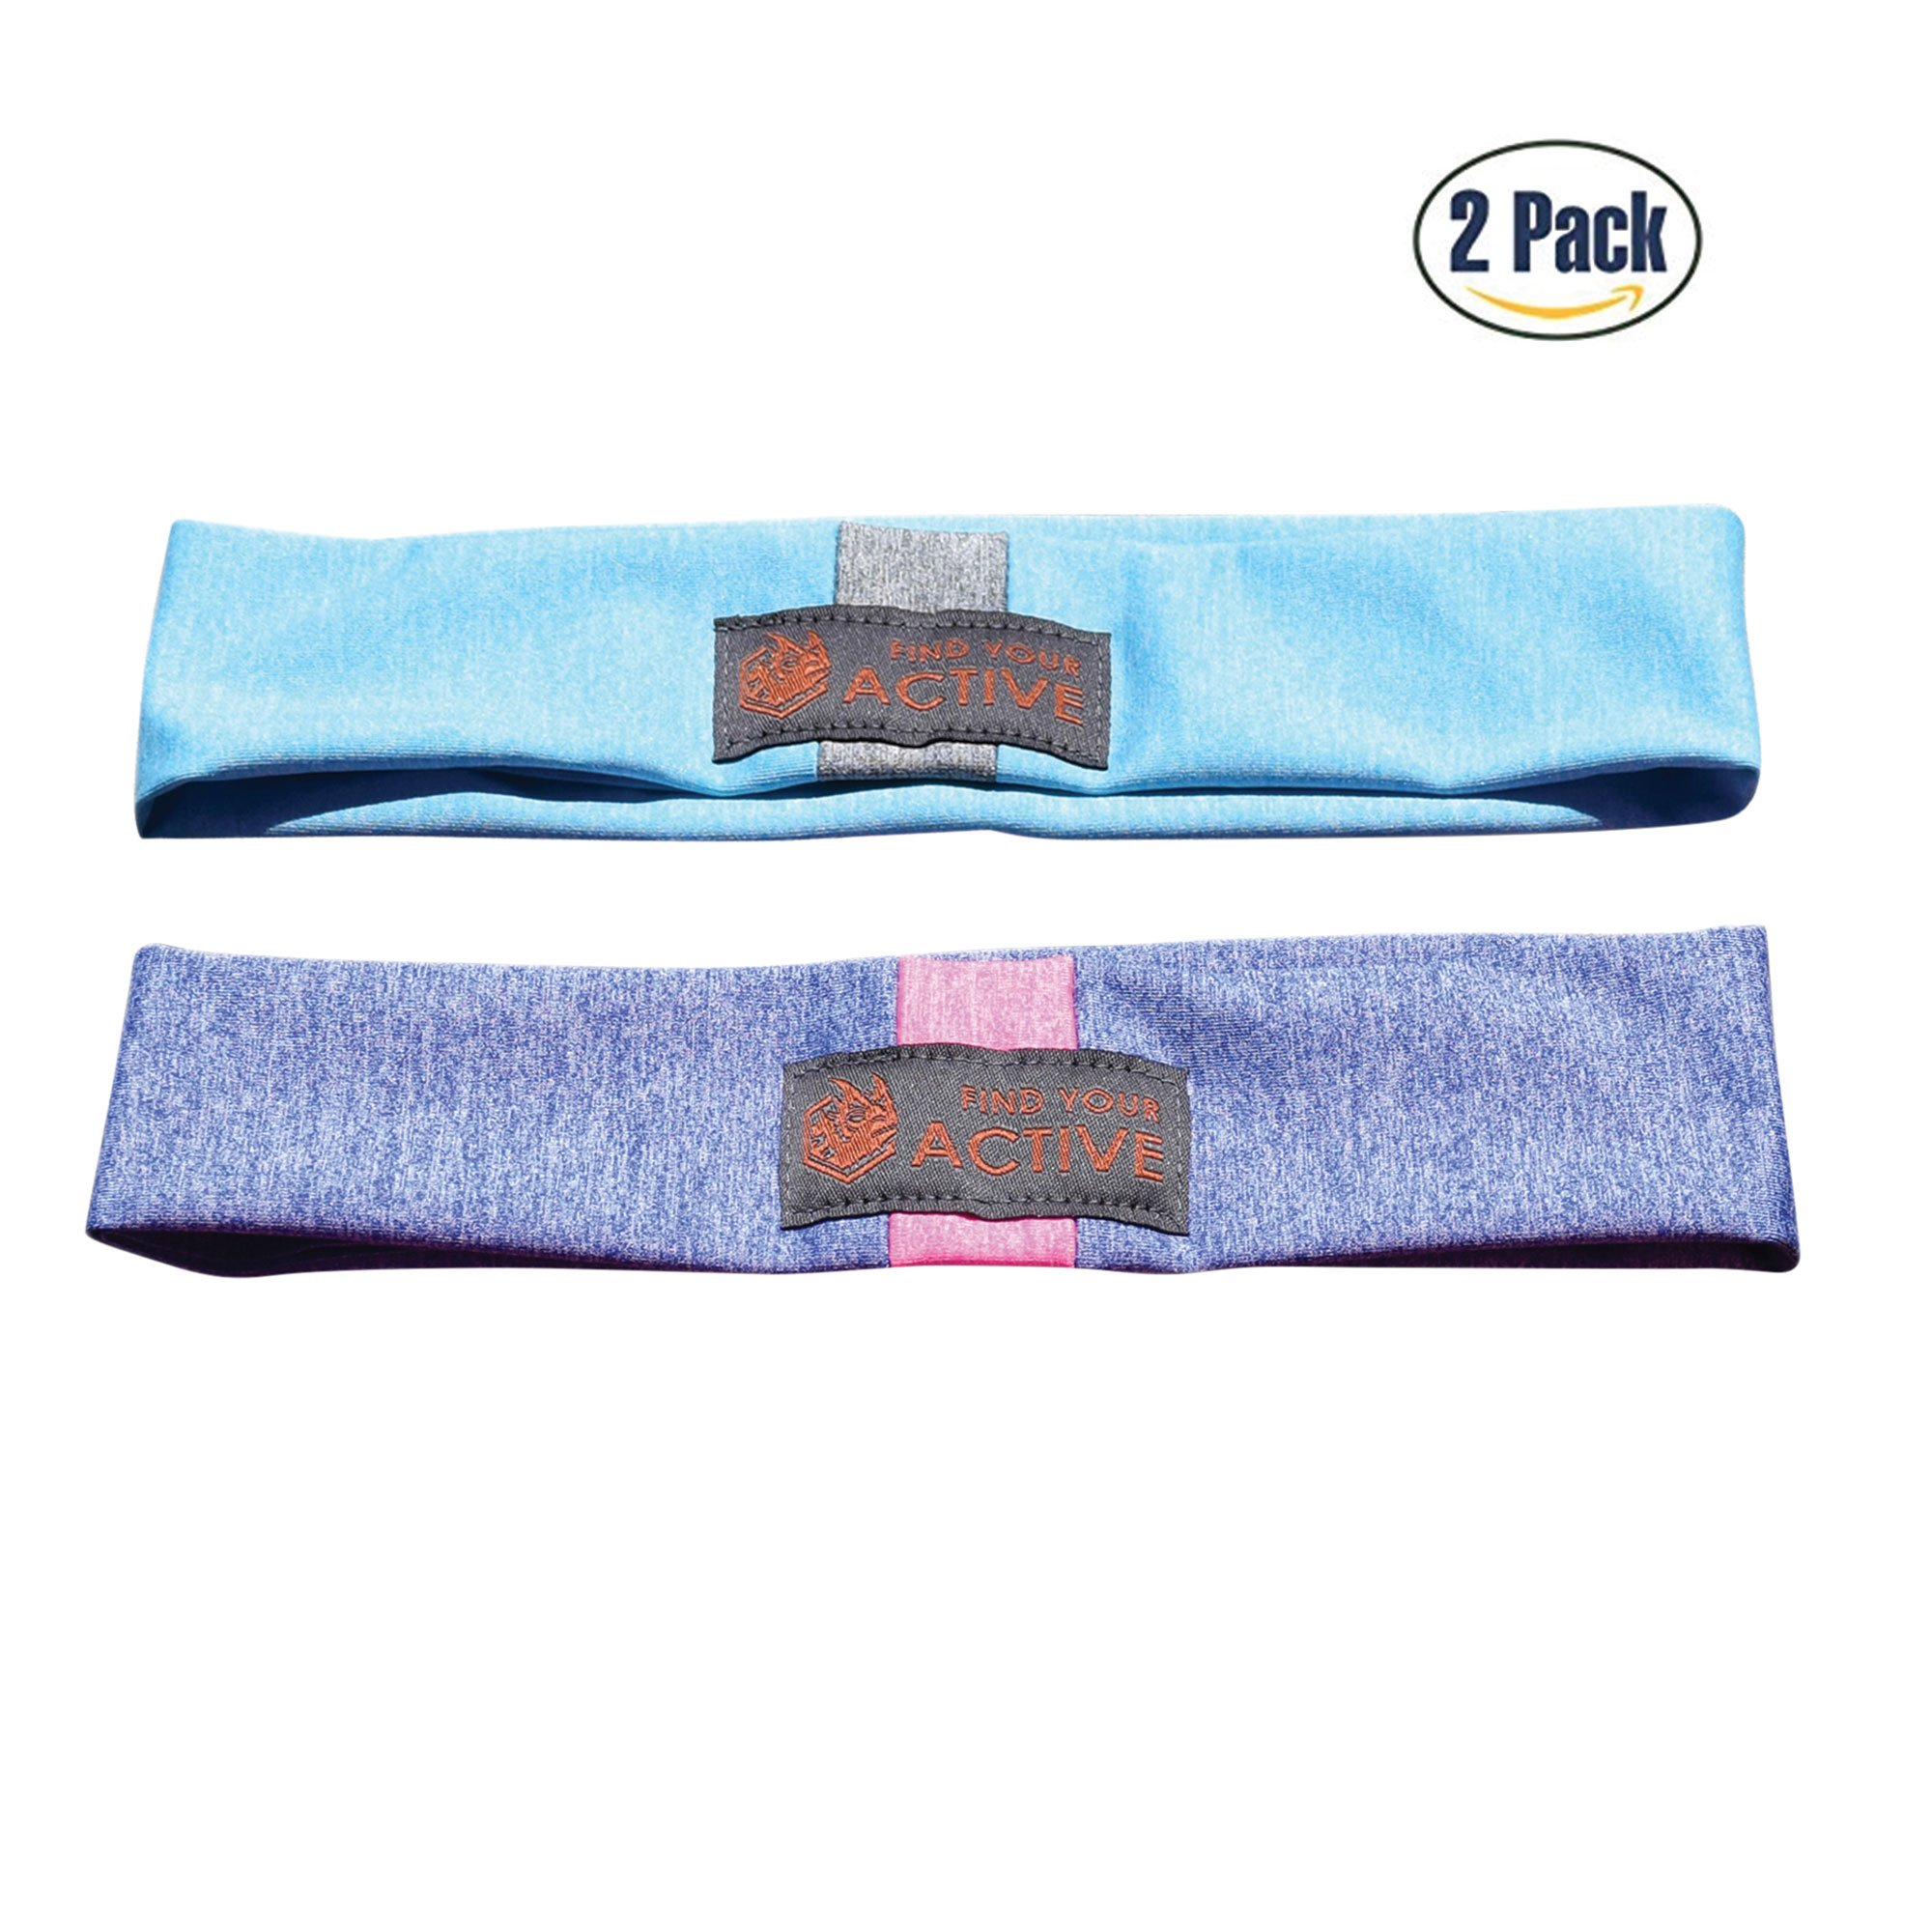 Red Dust Active Lightweight Sports Headband - Non Slip Moisture Wicking Sweatband - Ideal for Running, Cycling, Yoga and Athletic Workouts - by Twin Pack by Red Dust Active (Image #1)